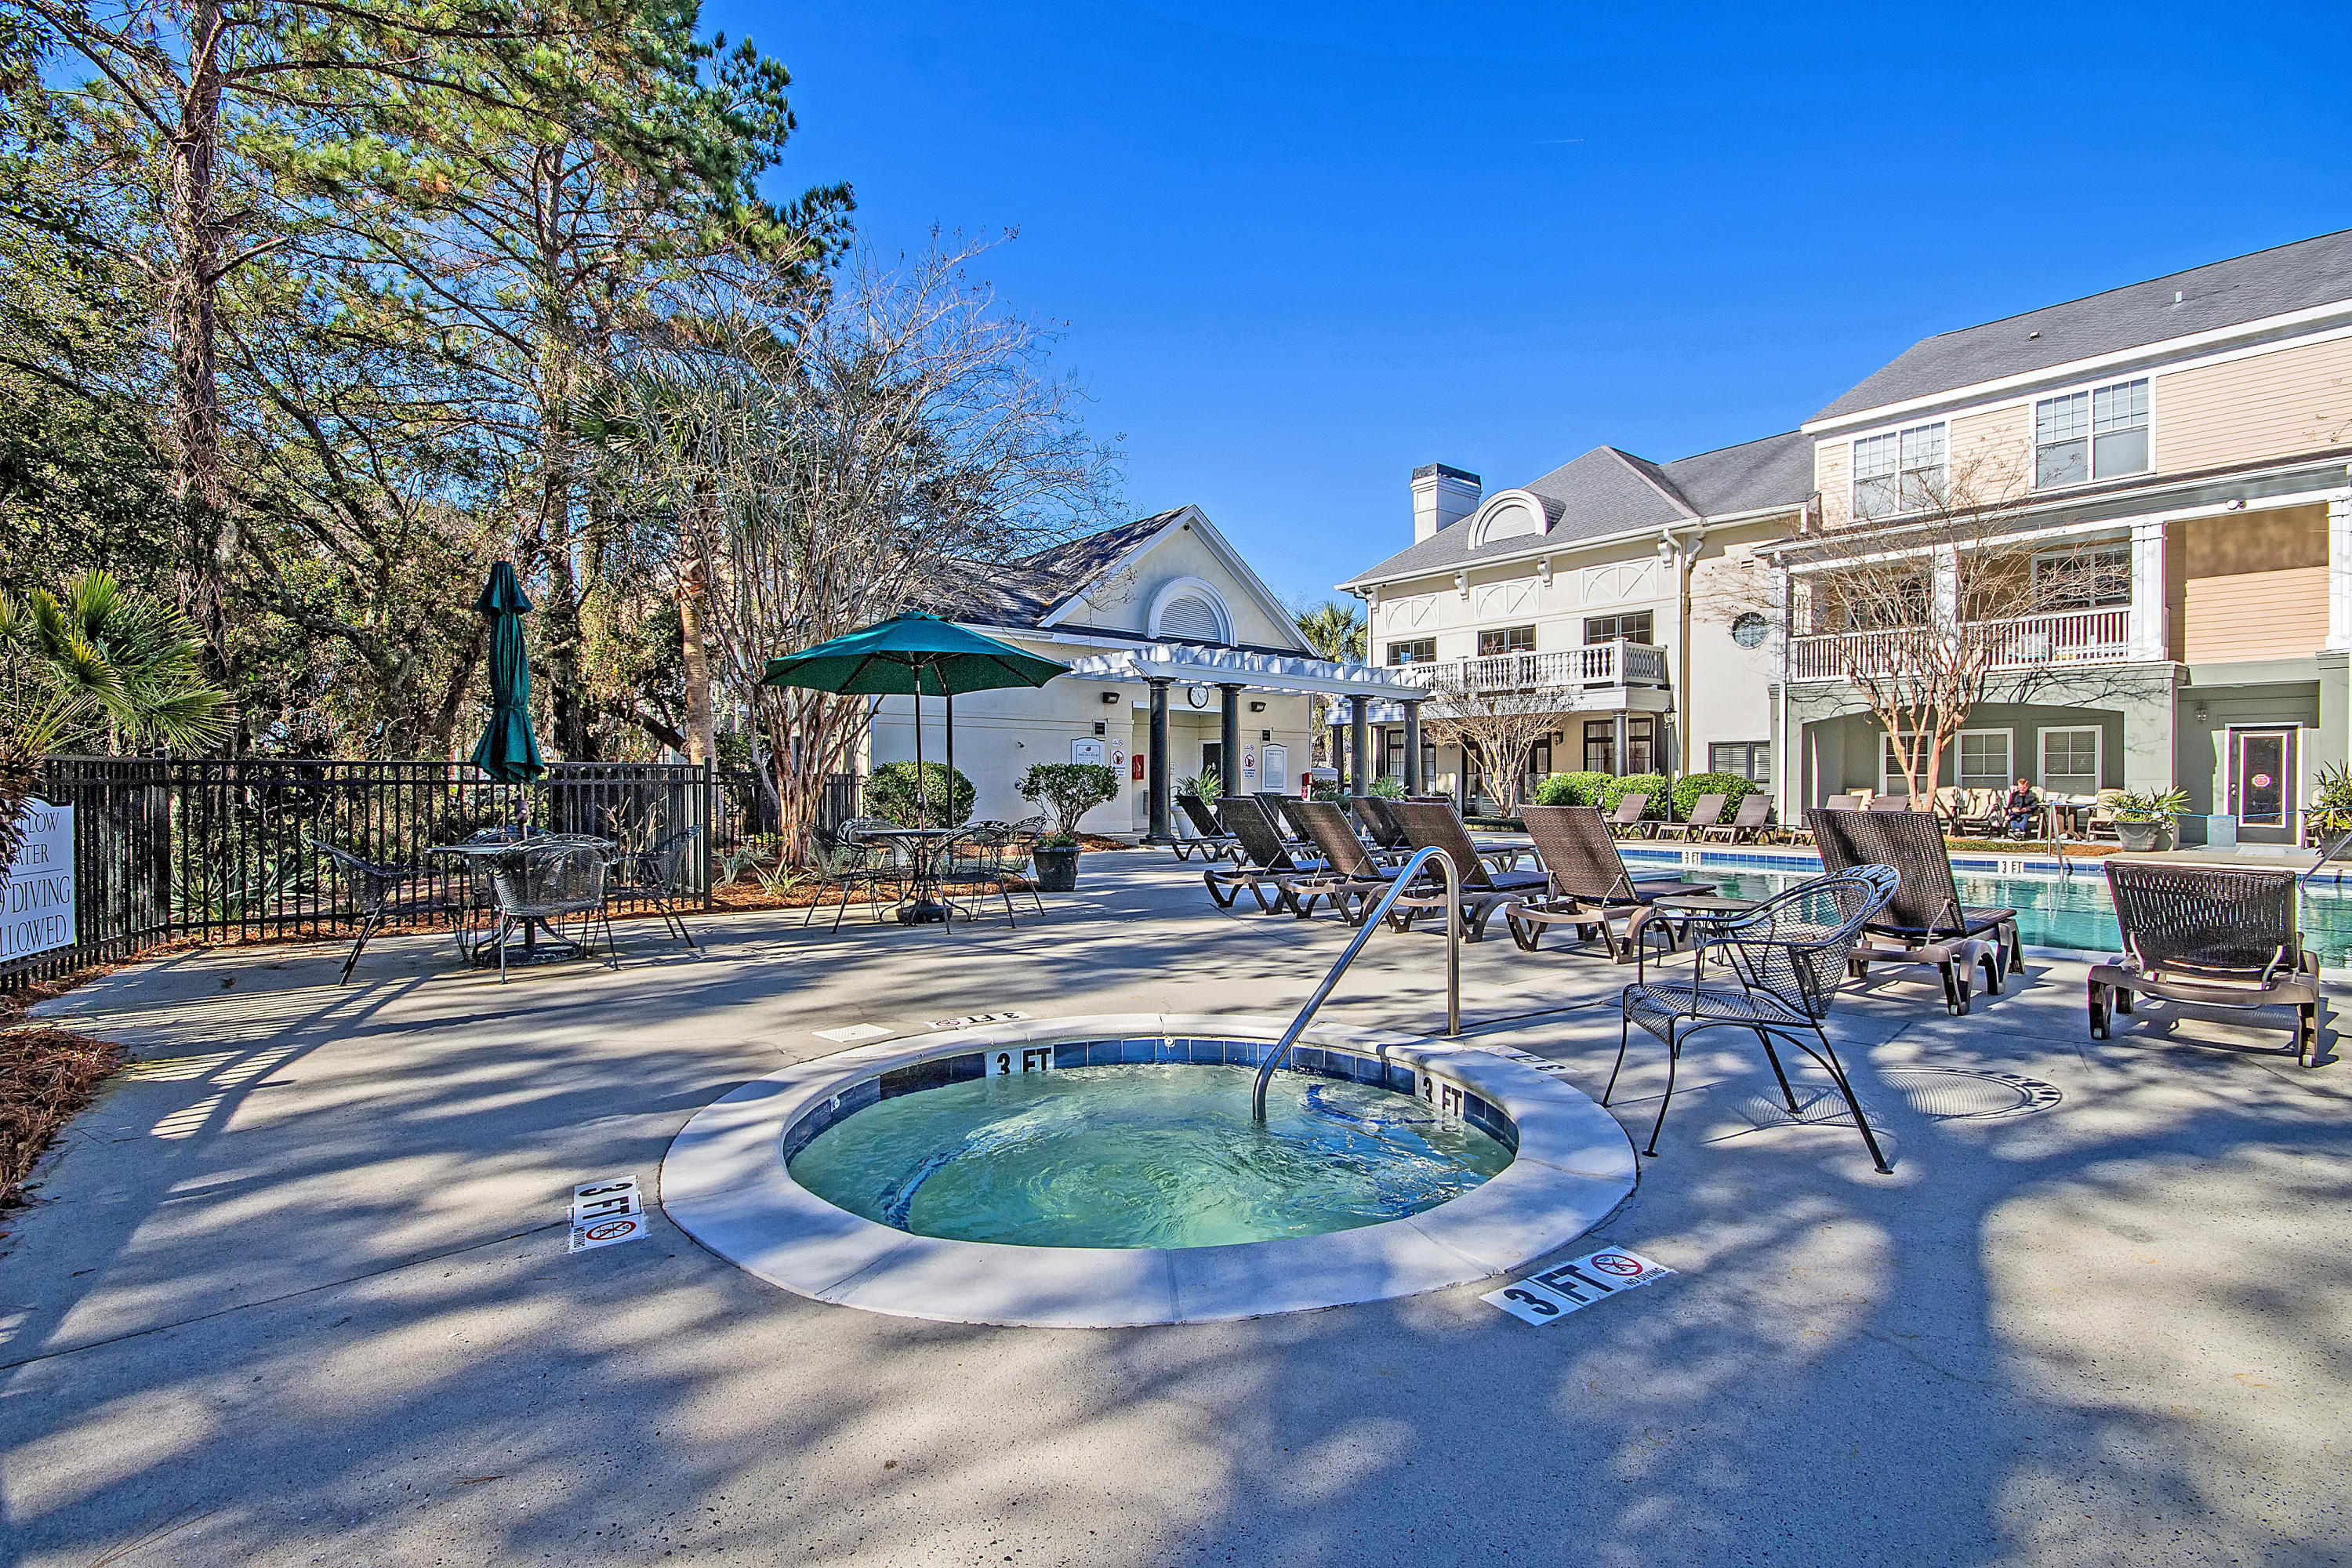 Daniel Landing Condos Homes For Sale - 130 River Landing, Daniel Island, SC - 3